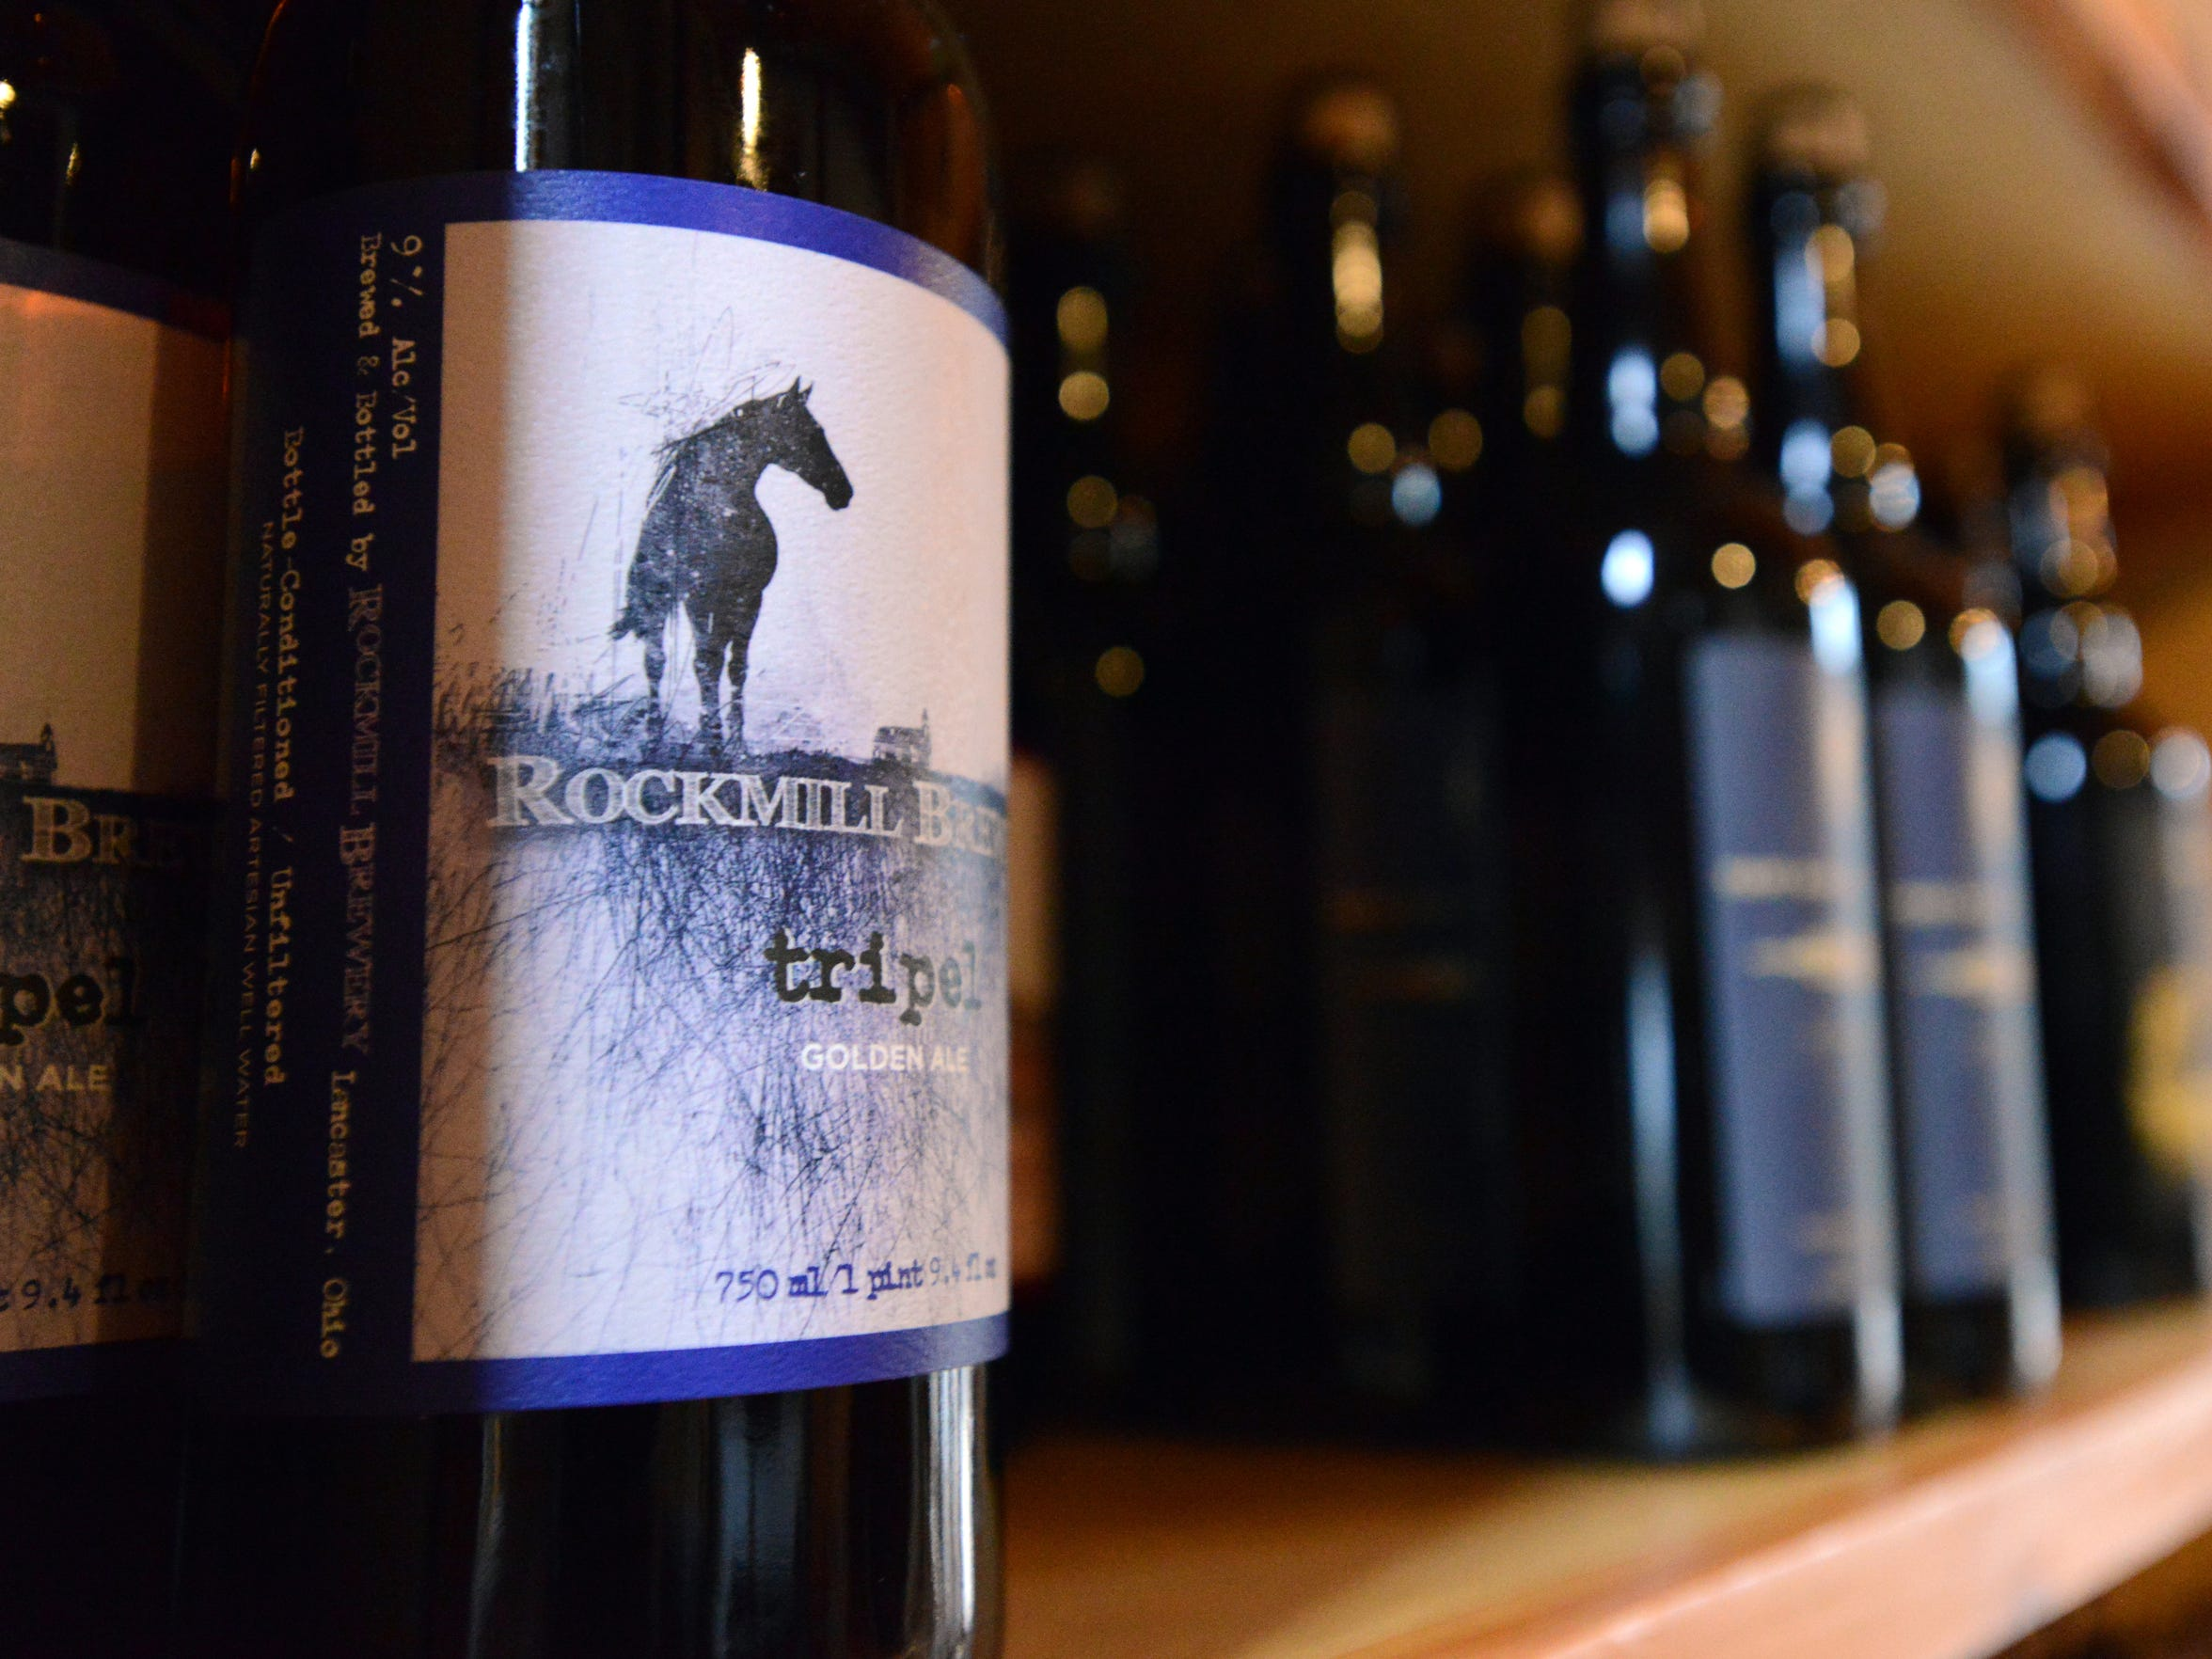 Rockmill Brewery started production in 2008 on a former horse farm in Greenfield Township near Lancaster.